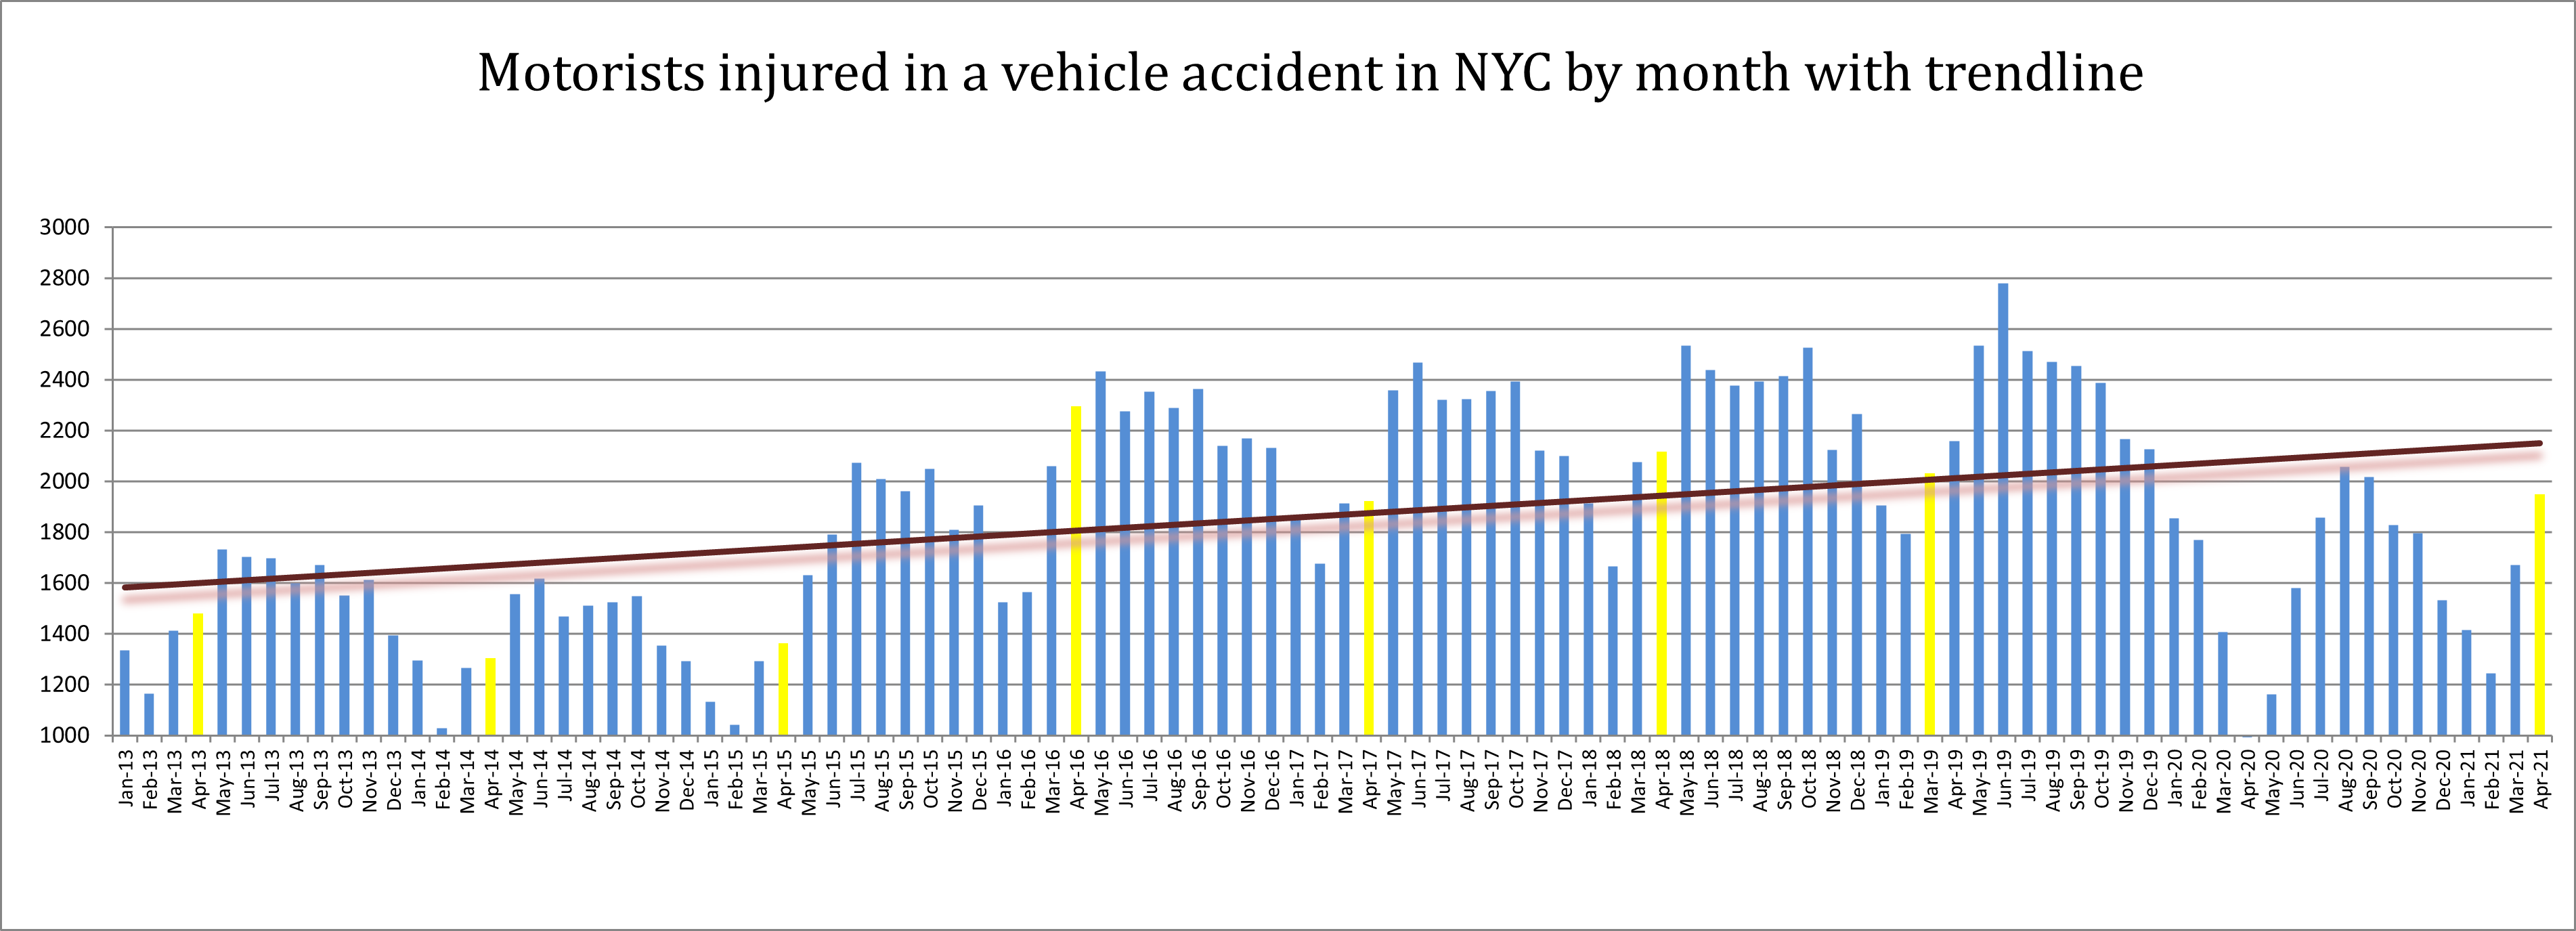 motorist injured in NYC car accidents April 2021